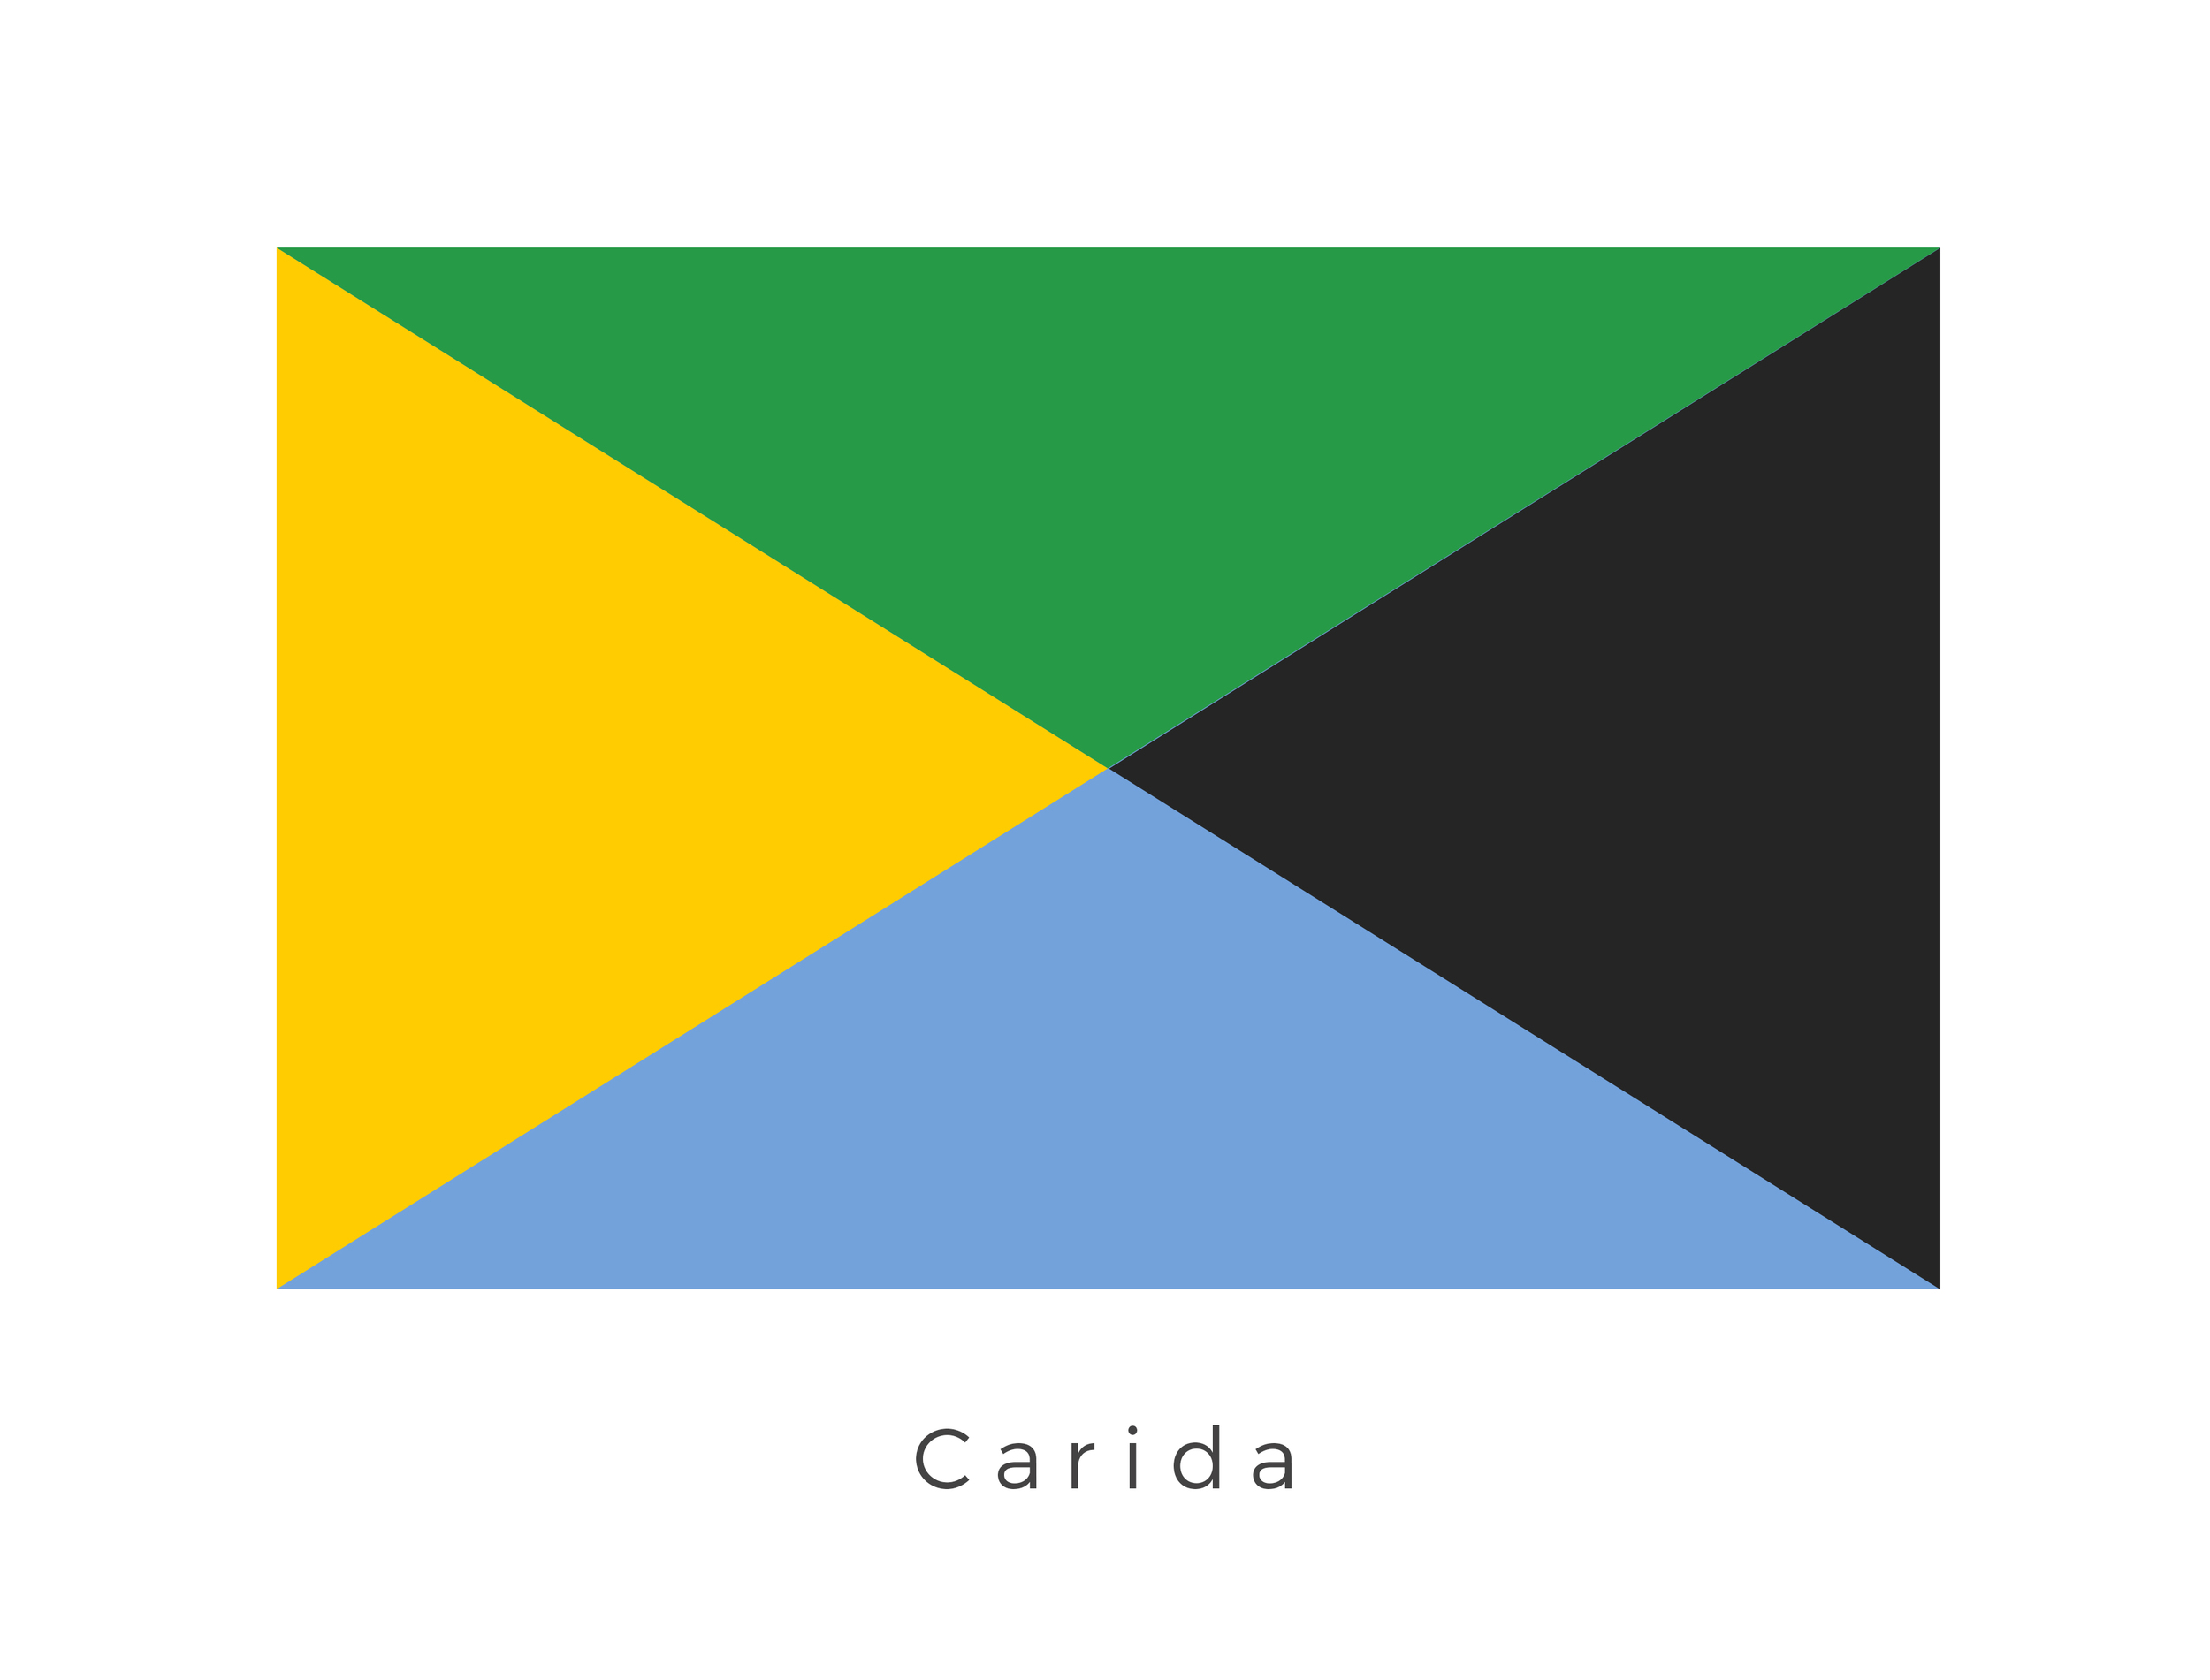 Carida  was a planet located in the Carida system. During the Clone Wars, the Valor space station orbited the planet, while the age of the Galactic Empire saw Carida as home to an Imperial academy and a naval docking facility. The four coloured panels which make up the flag represent the different periods in the planets history, from the period when it was affiliated with the Galactic Republic to the period of time when it was affiliated with the Galactic Empire.